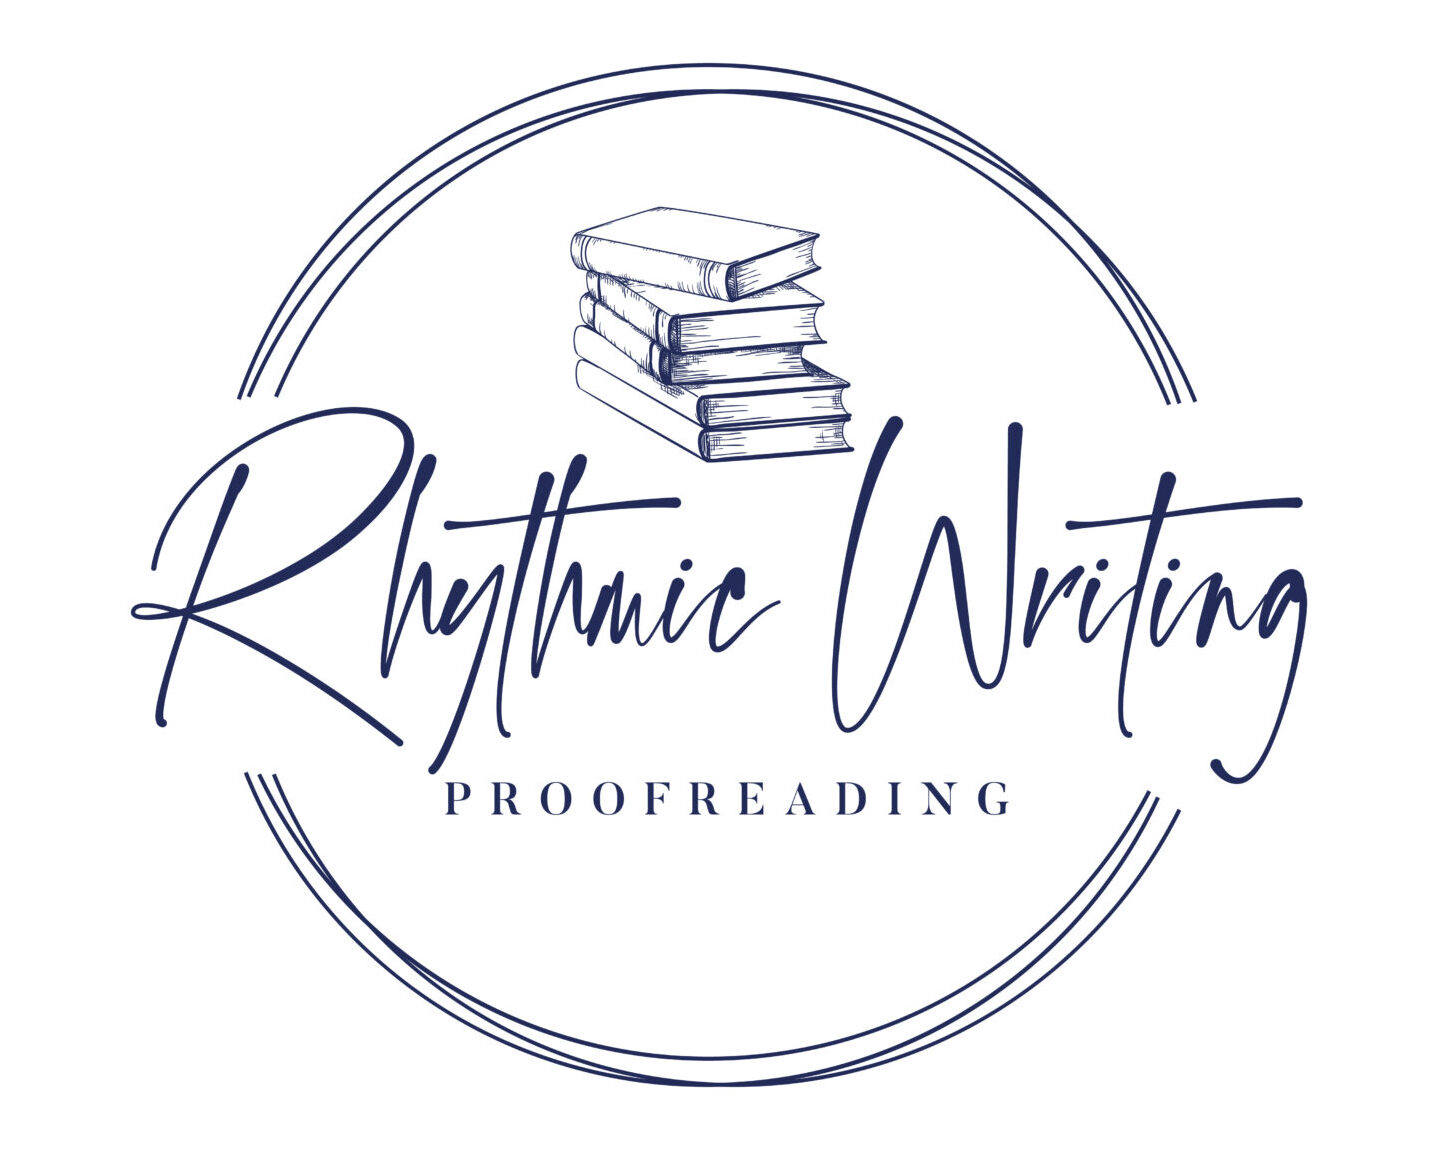 Rhythmic Writing Proofreading